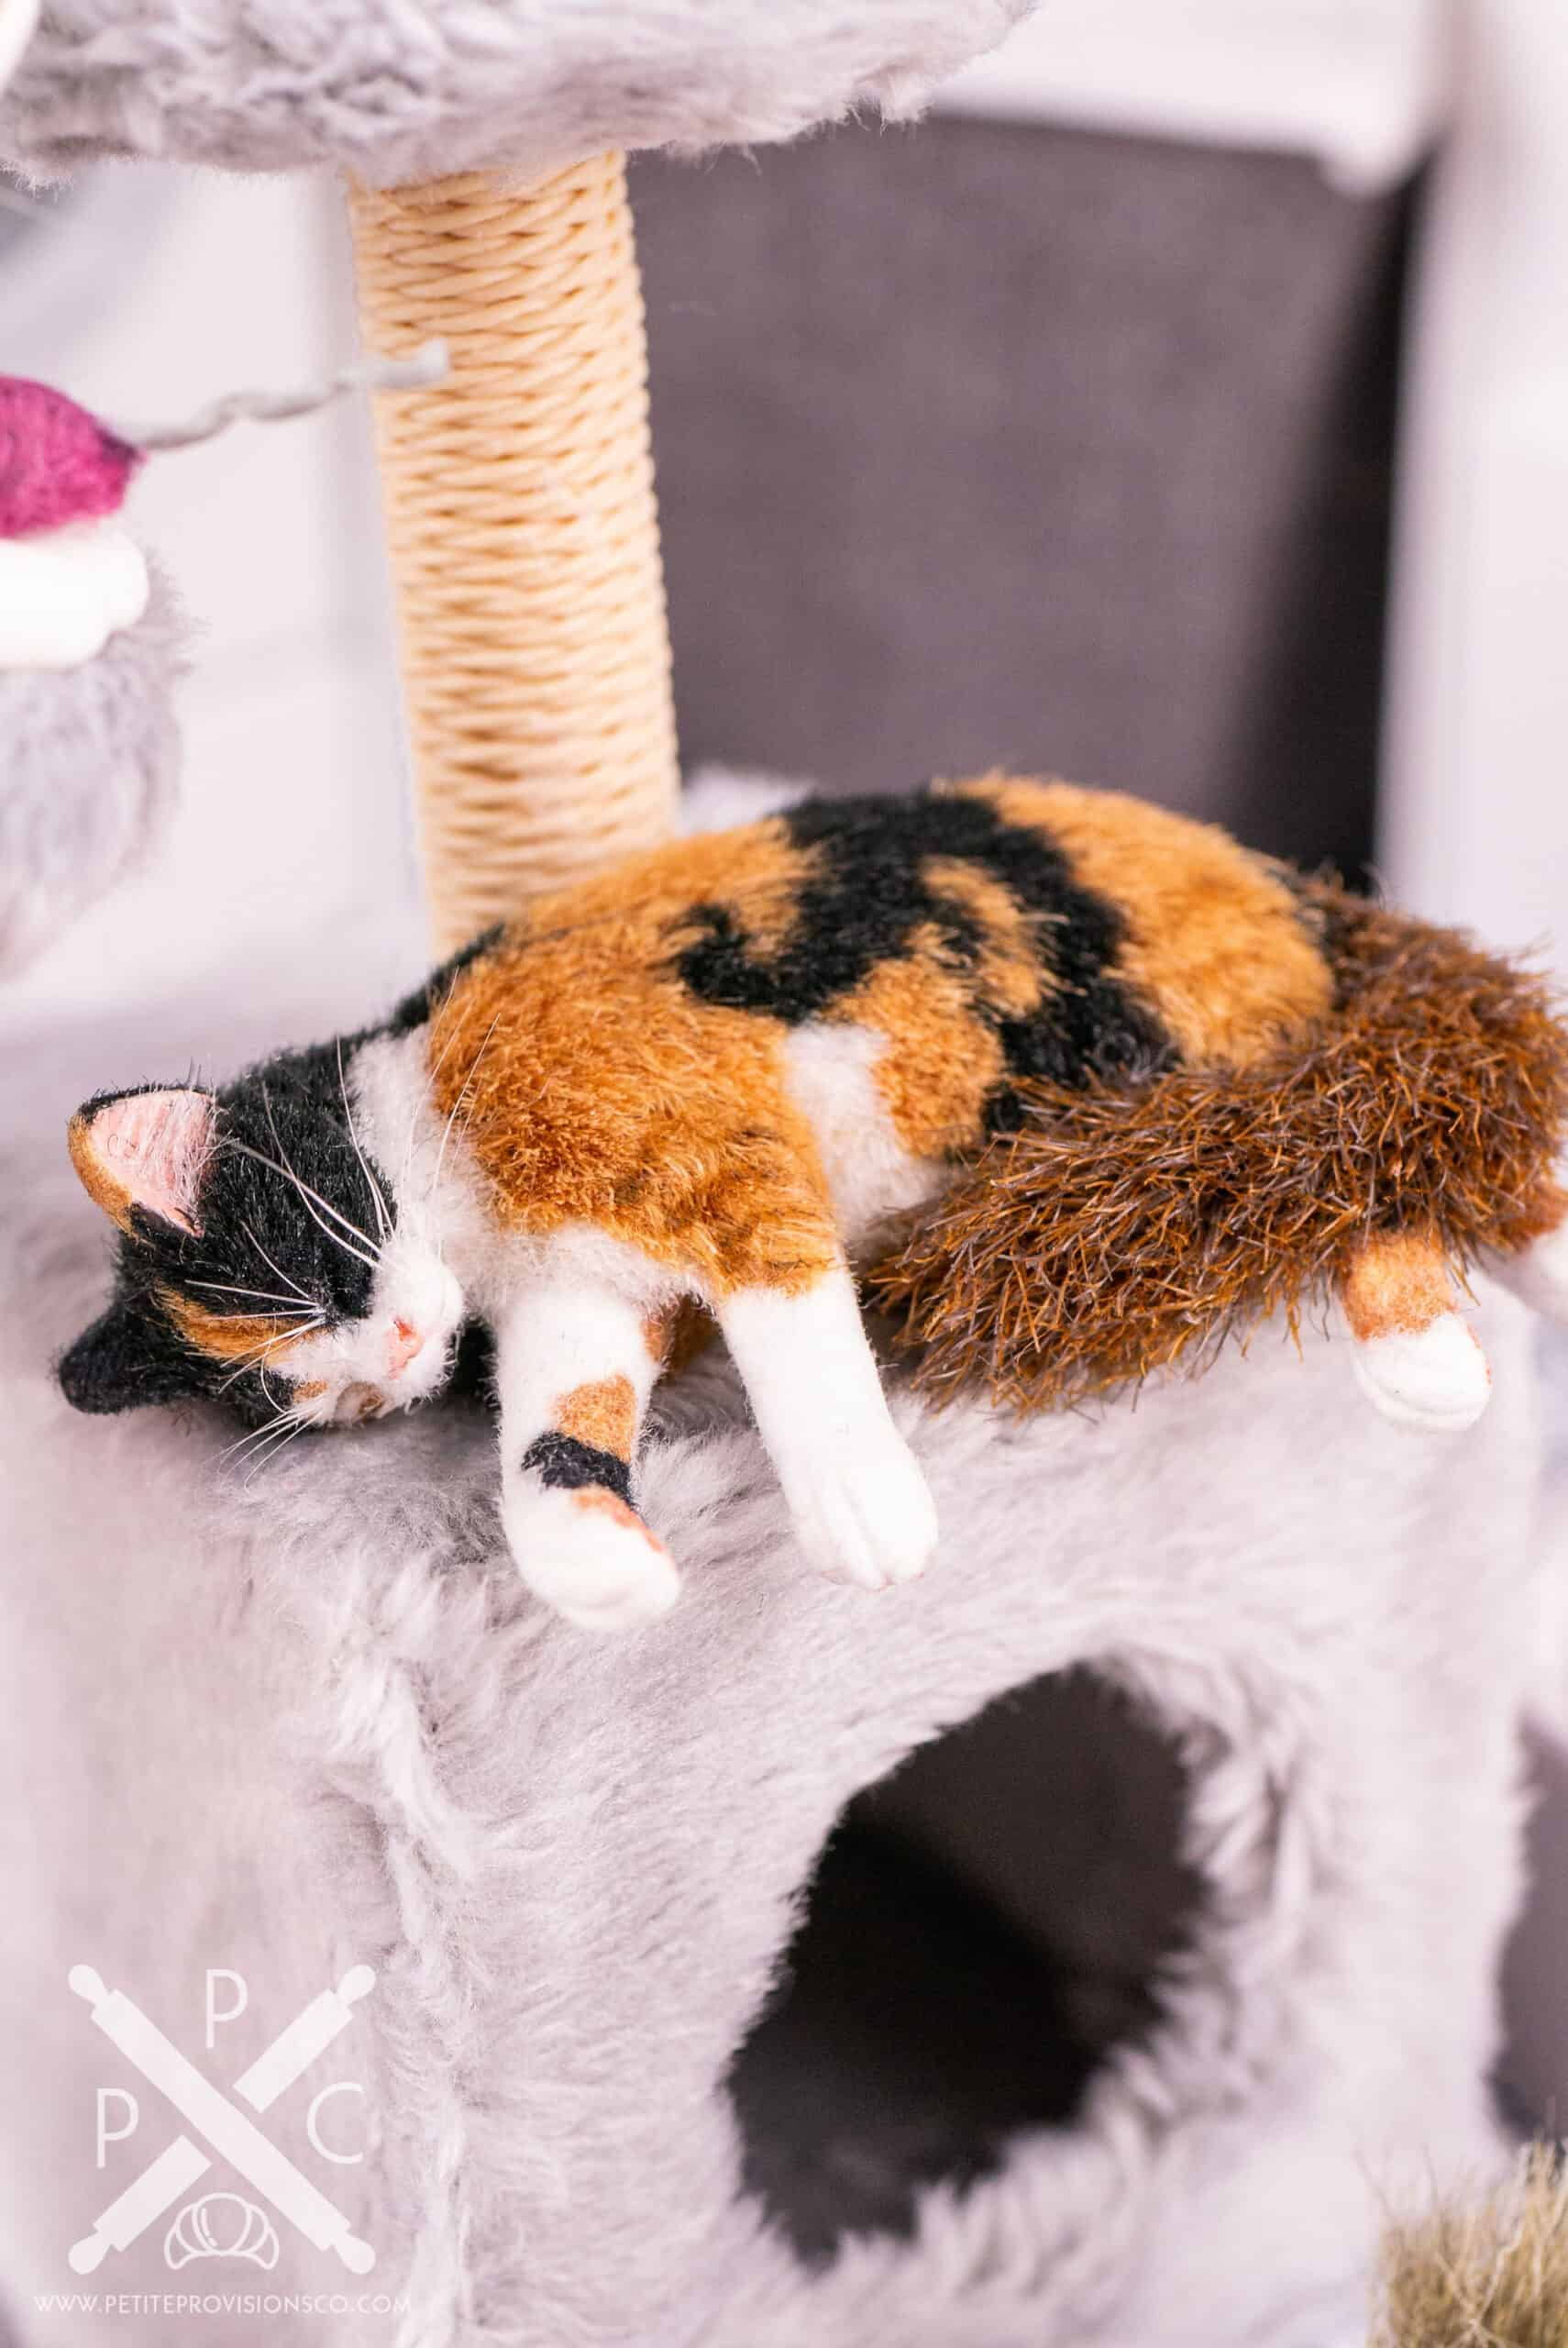 One inch scale sleeping calico cat on a handmade cat tower in a dollhouse miniature scene by Erika Pitera, The Petite Provisions Co.